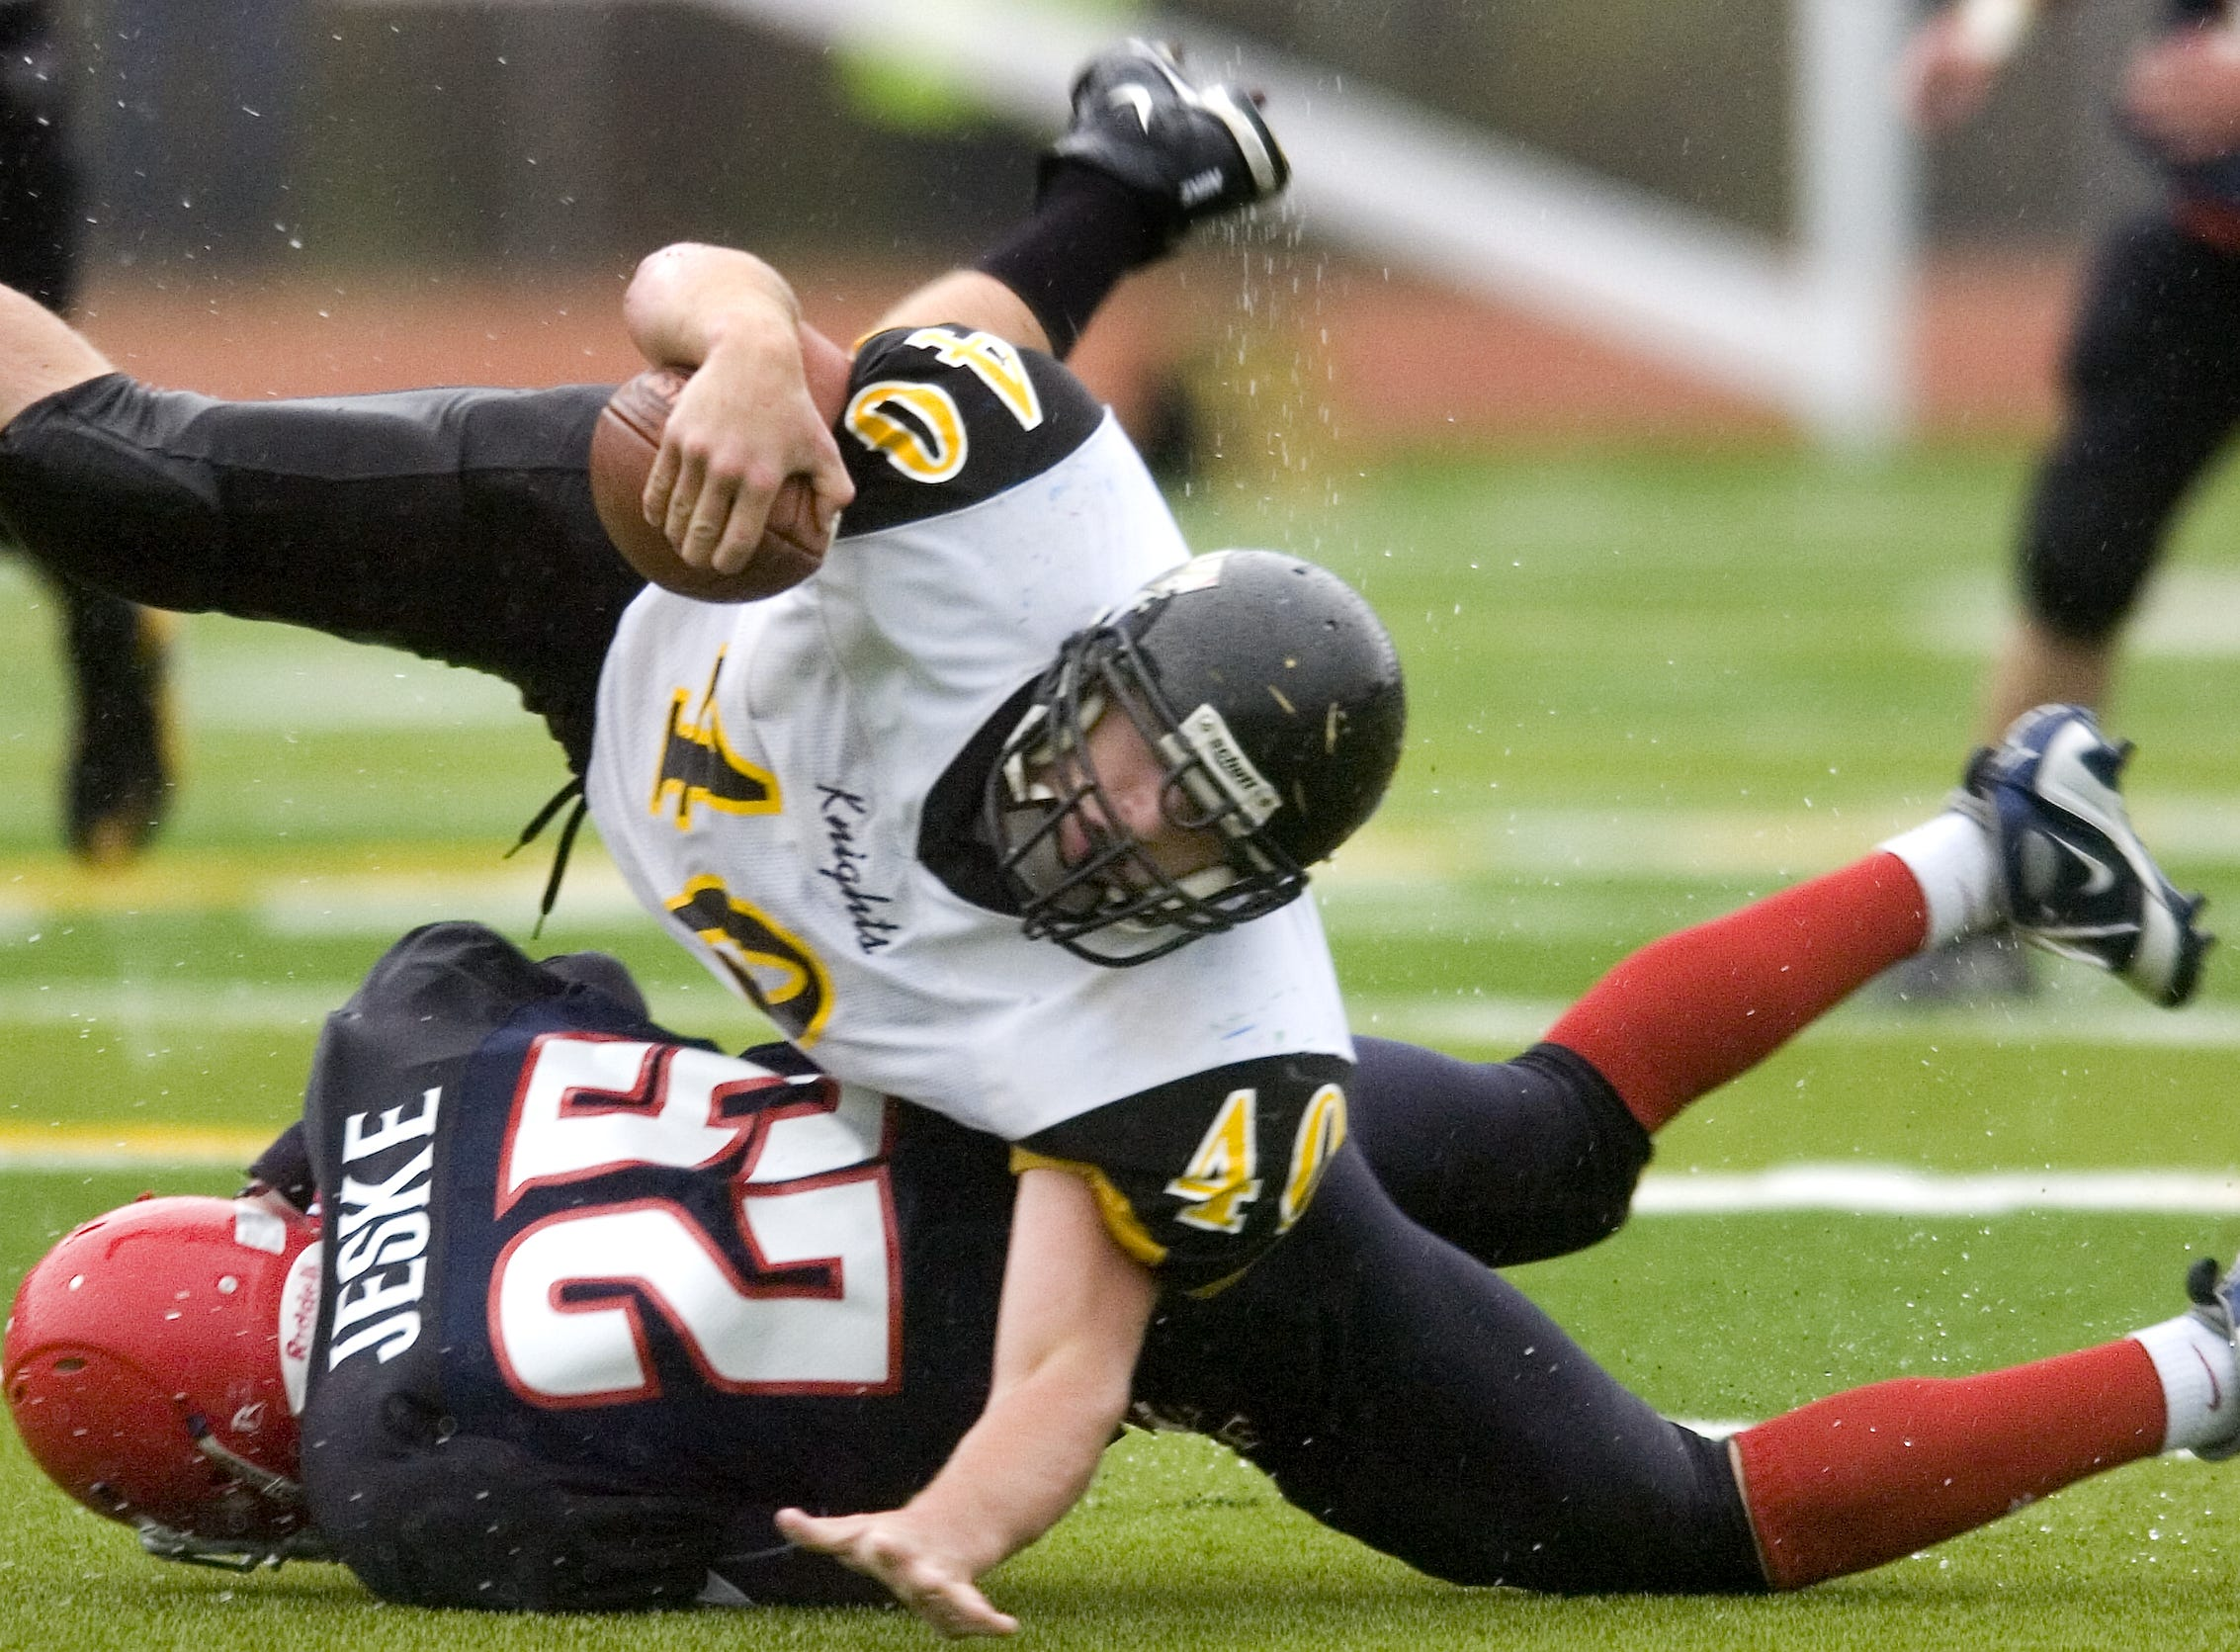 From 2008: Windsor's  Noah Sibley heads down after getting tackle by Chenango Forks's  Mike Jeske during the 2nd half of their game Saturday at Chenango Forks. Chenango Forks won 8-0.